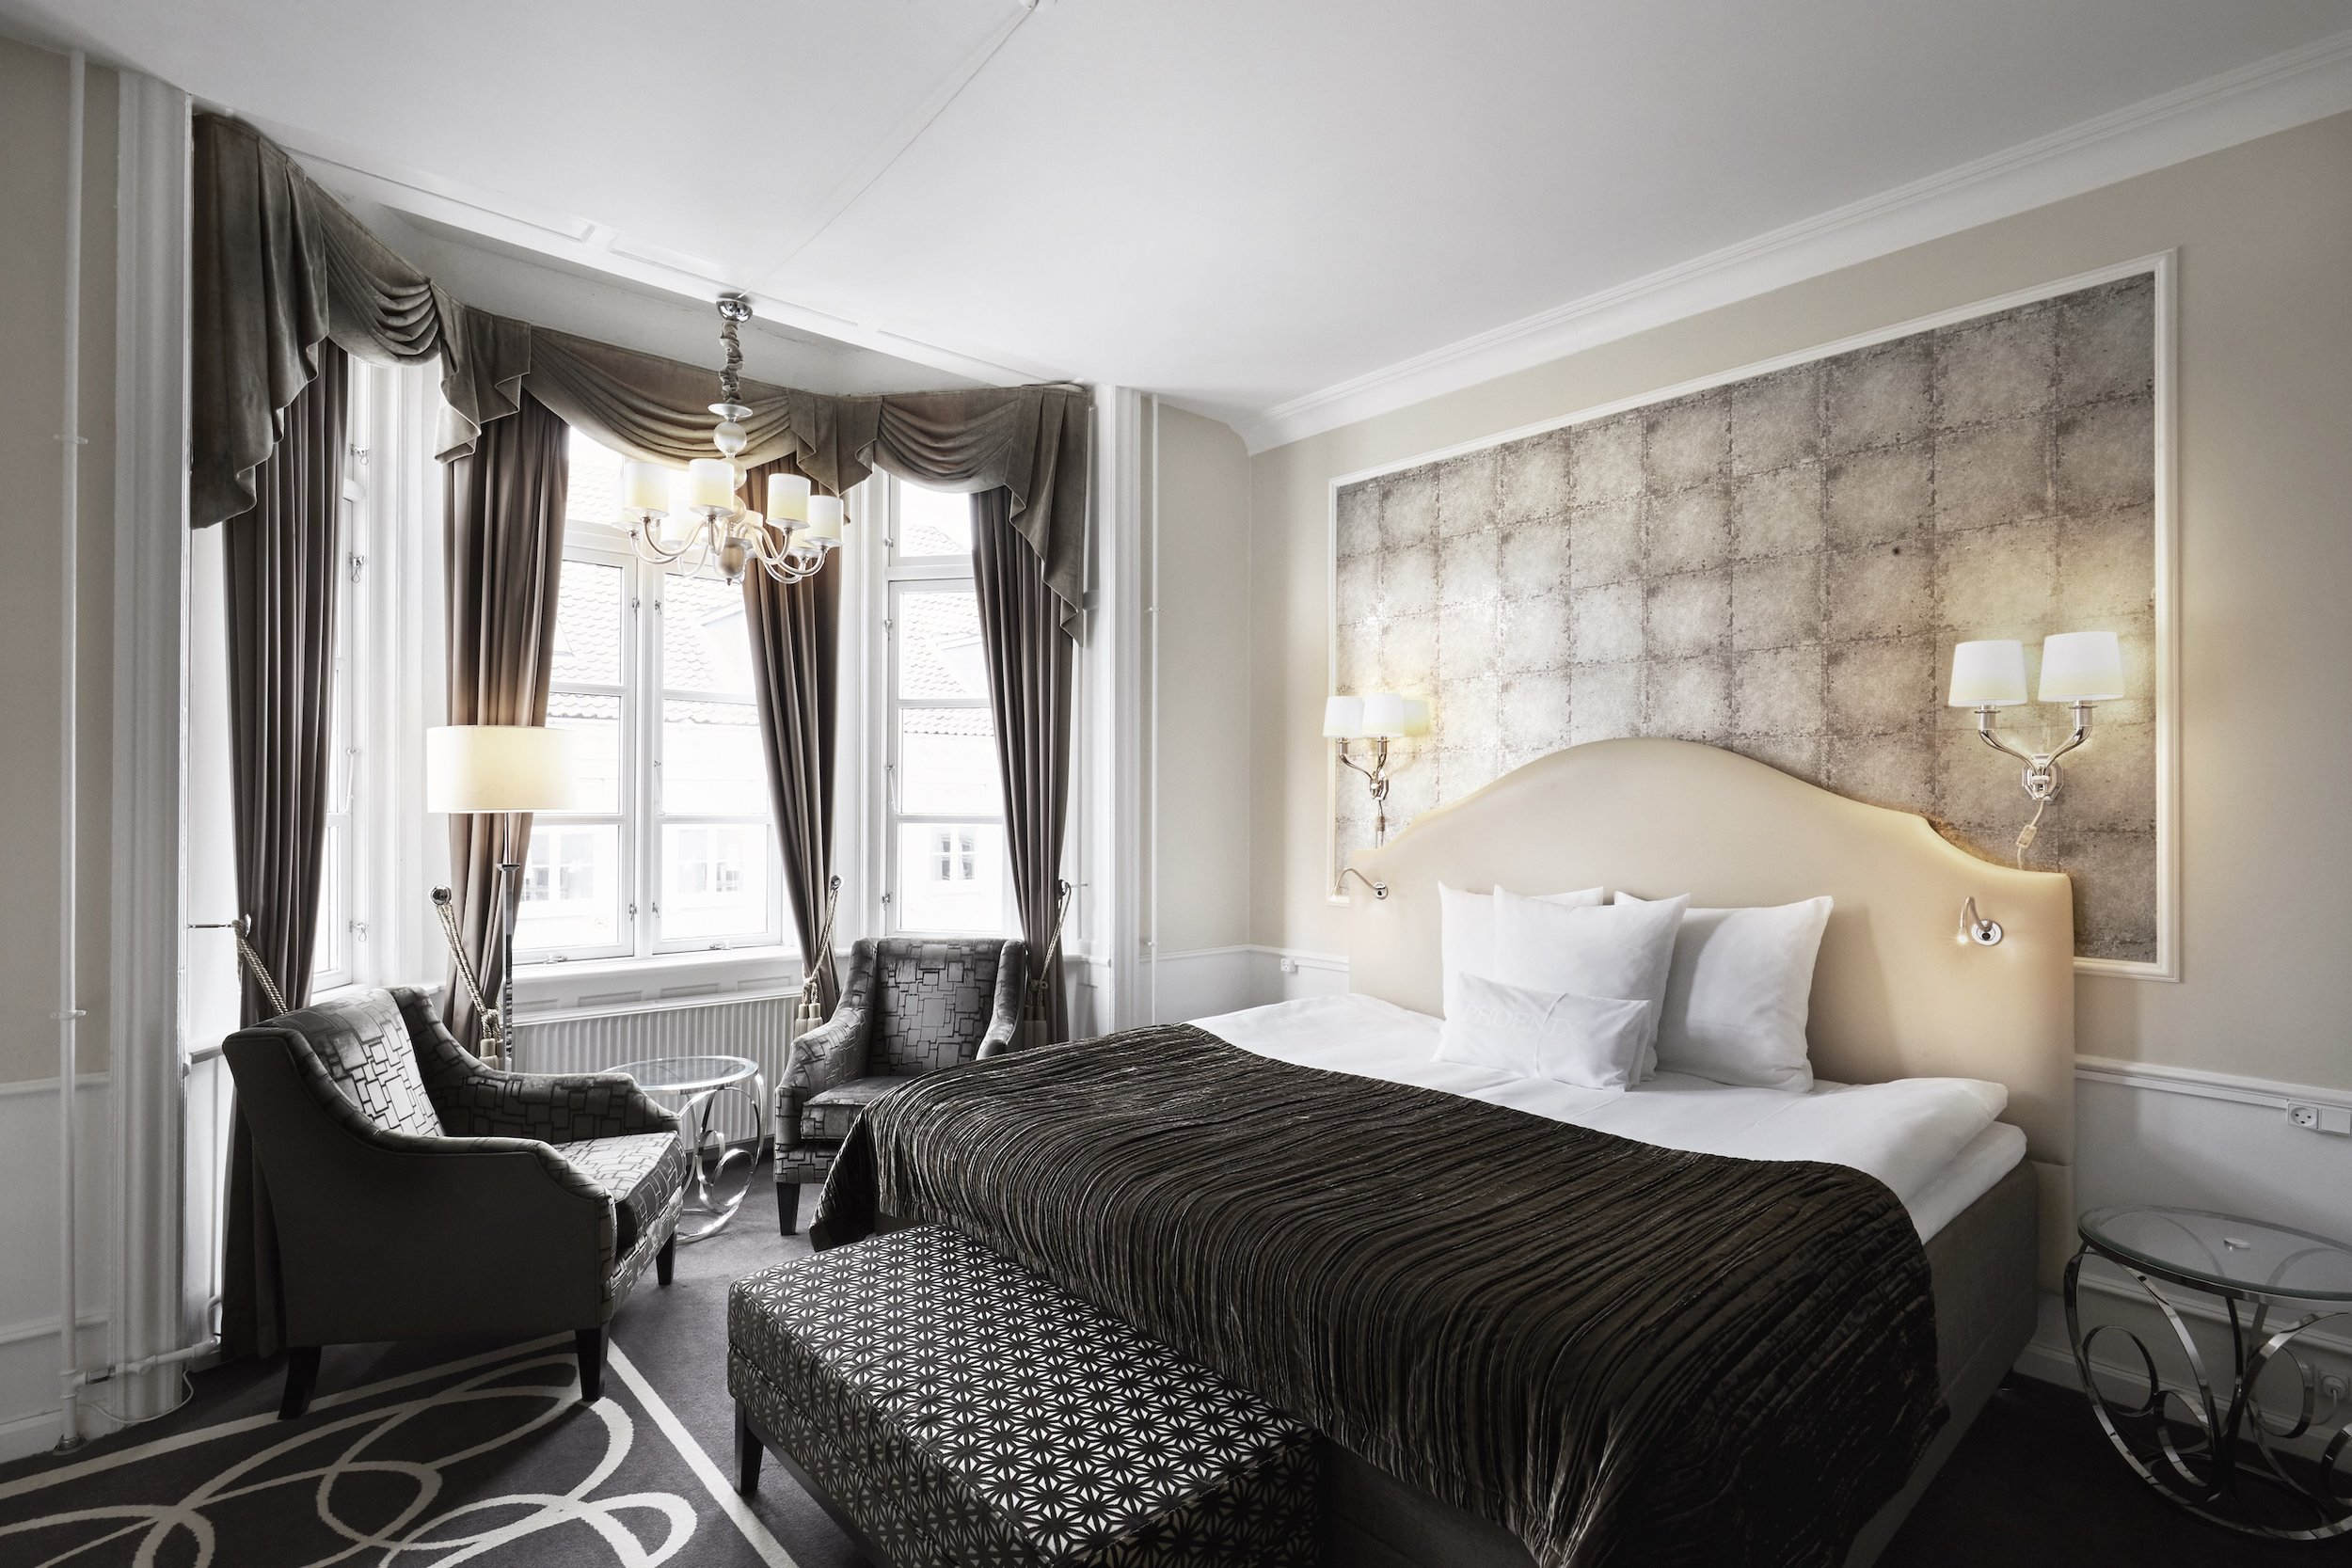 Executive double room - picture is, once again, courtesy of  the hotel's press kit